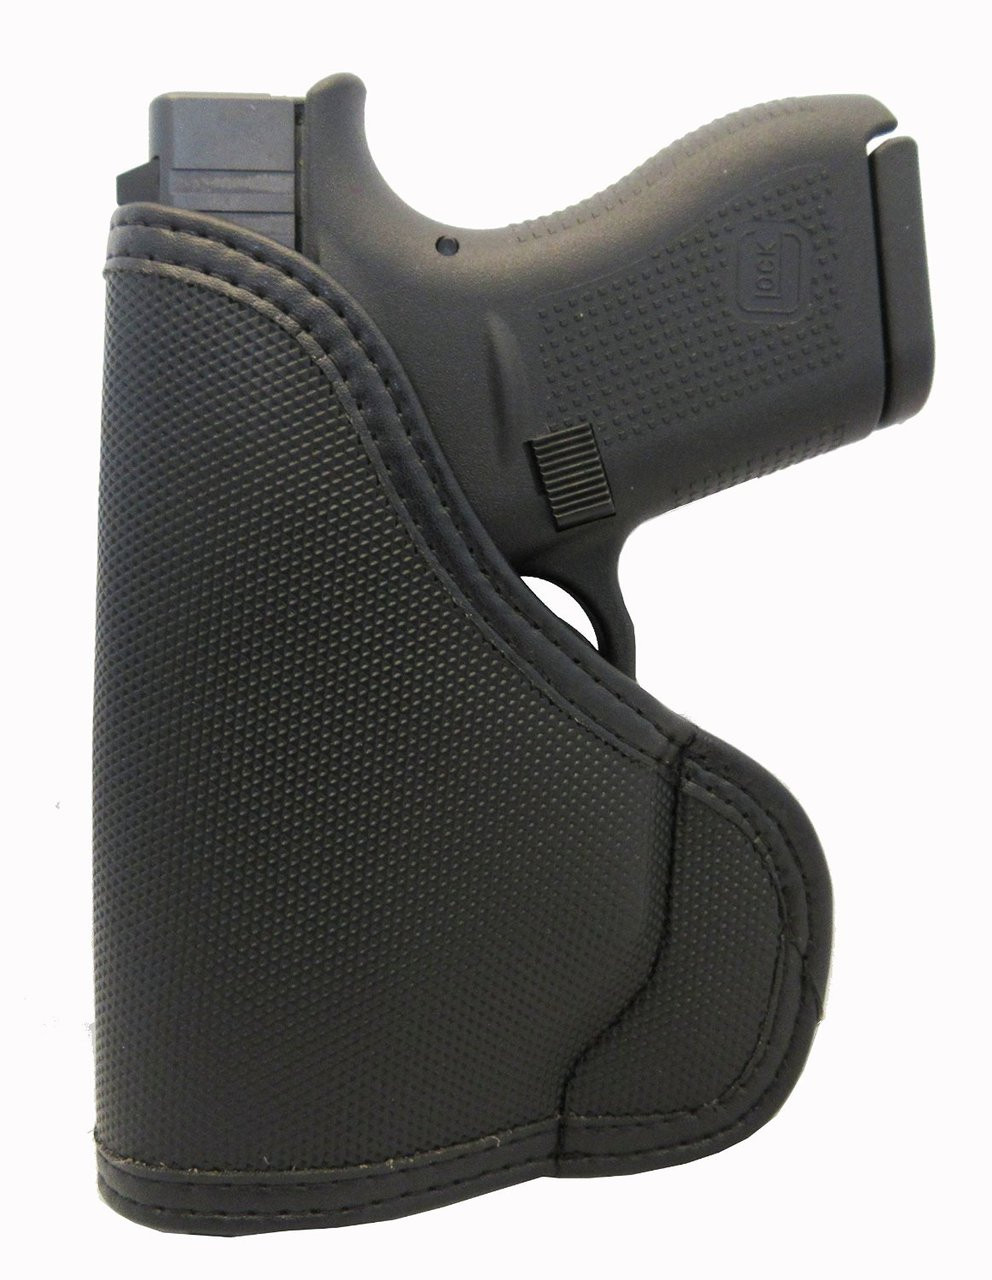 GLOCK 42 G42 .380 Custom Fit Leather Trimmed orGUNizer Poly Pocket Holster For Concealed Carry Comfort (D)